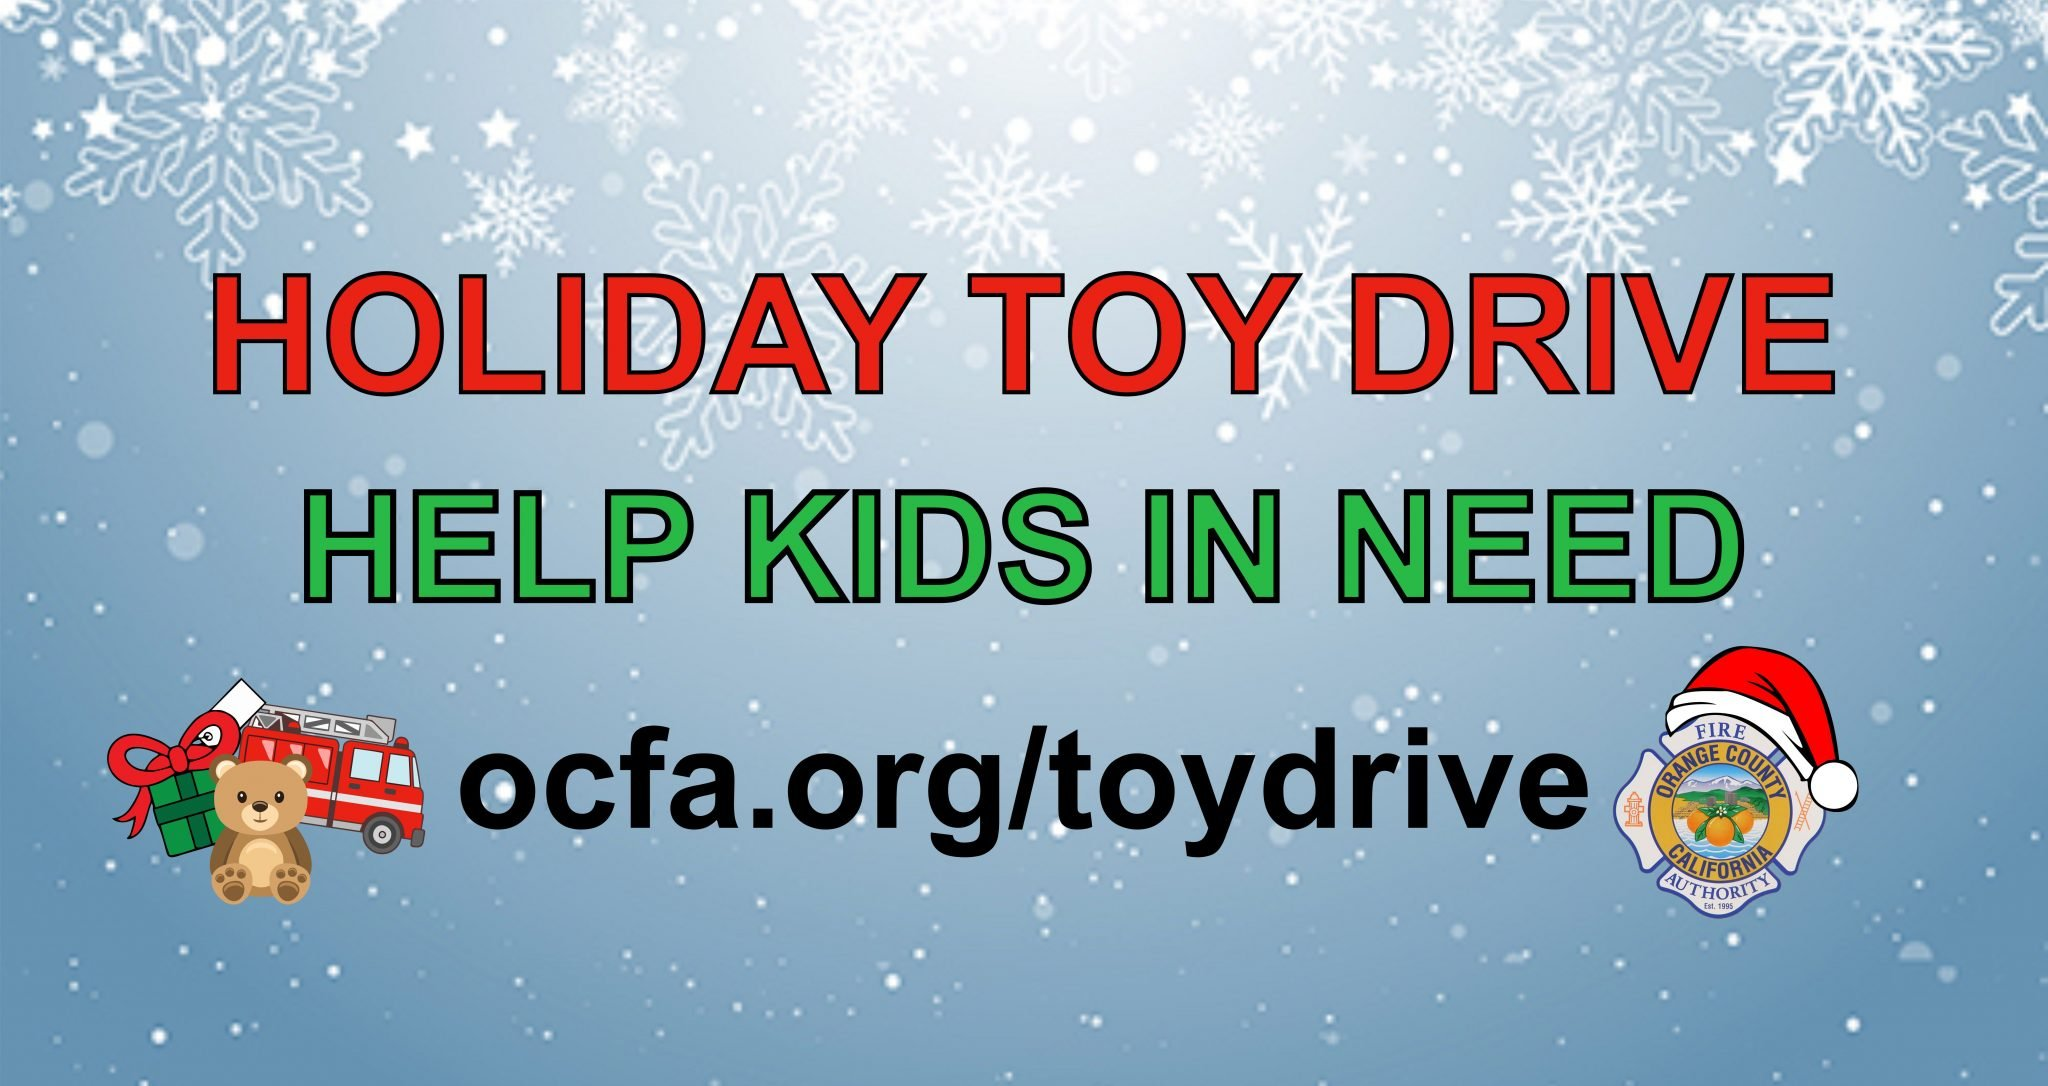 Holiday Toy Drive Help Kids in Need ocfa.org/toydrive